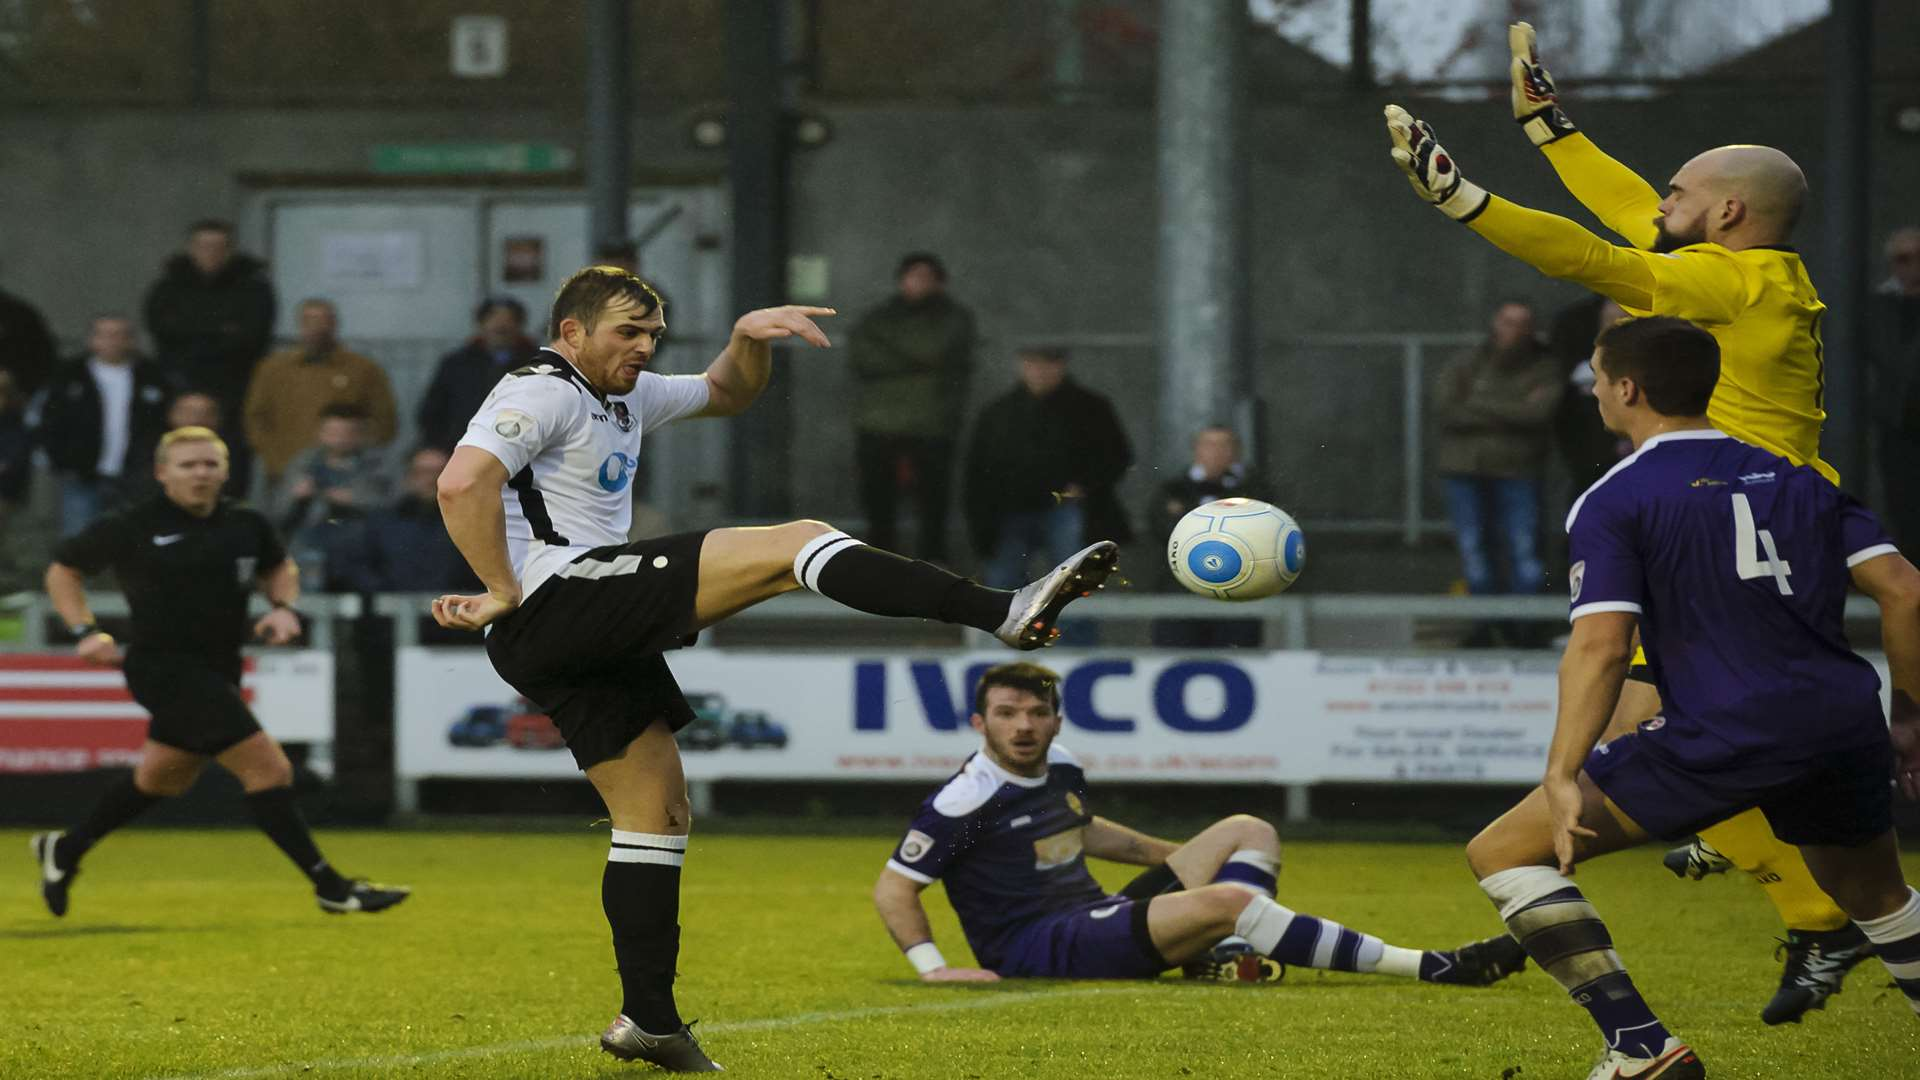 Tom Murphy scores on his home debut for Dartford. Picture: Andy Payton